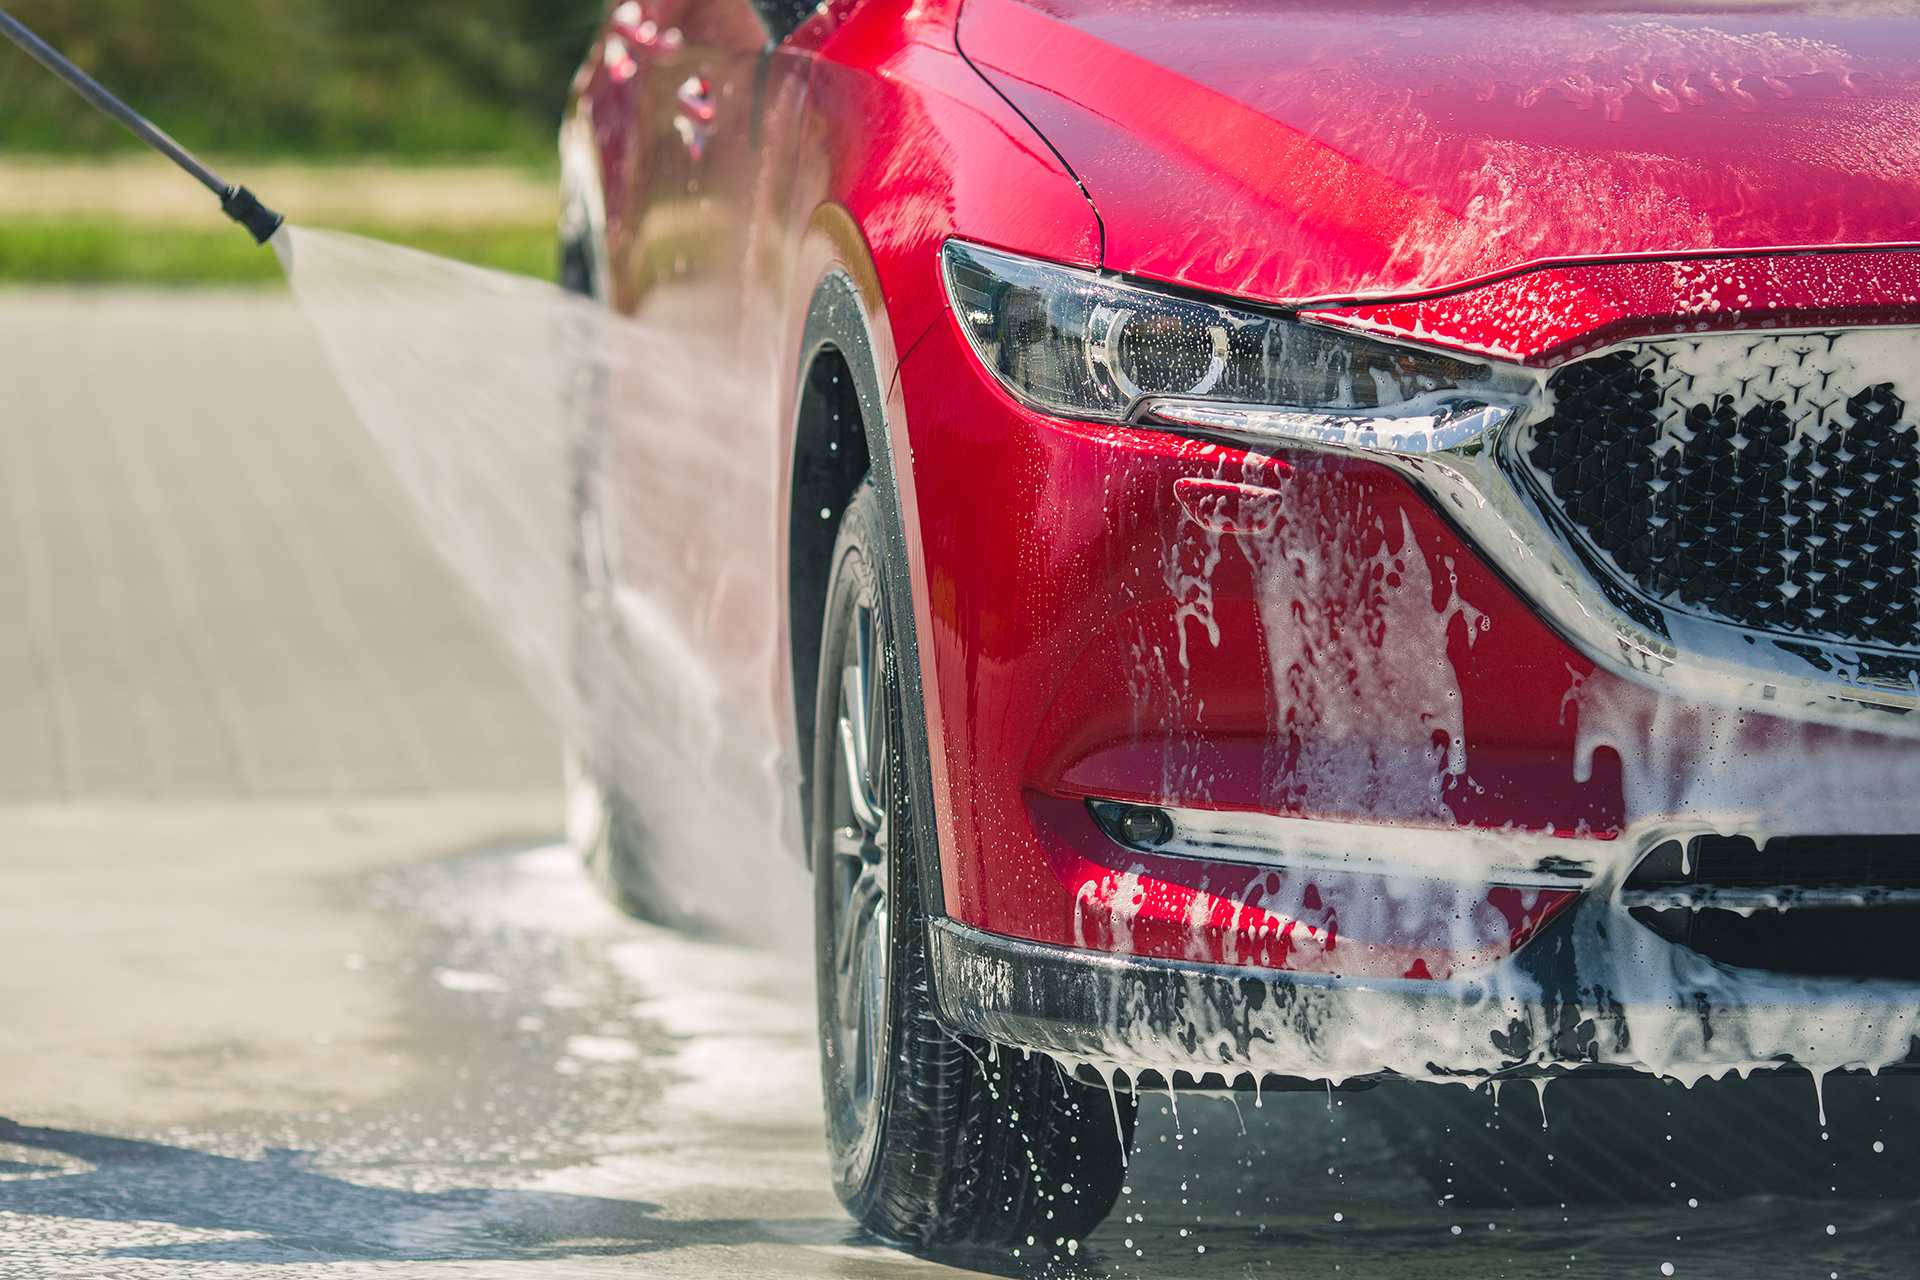 AT THE CAR WASH: Great places to get your car cleaned up